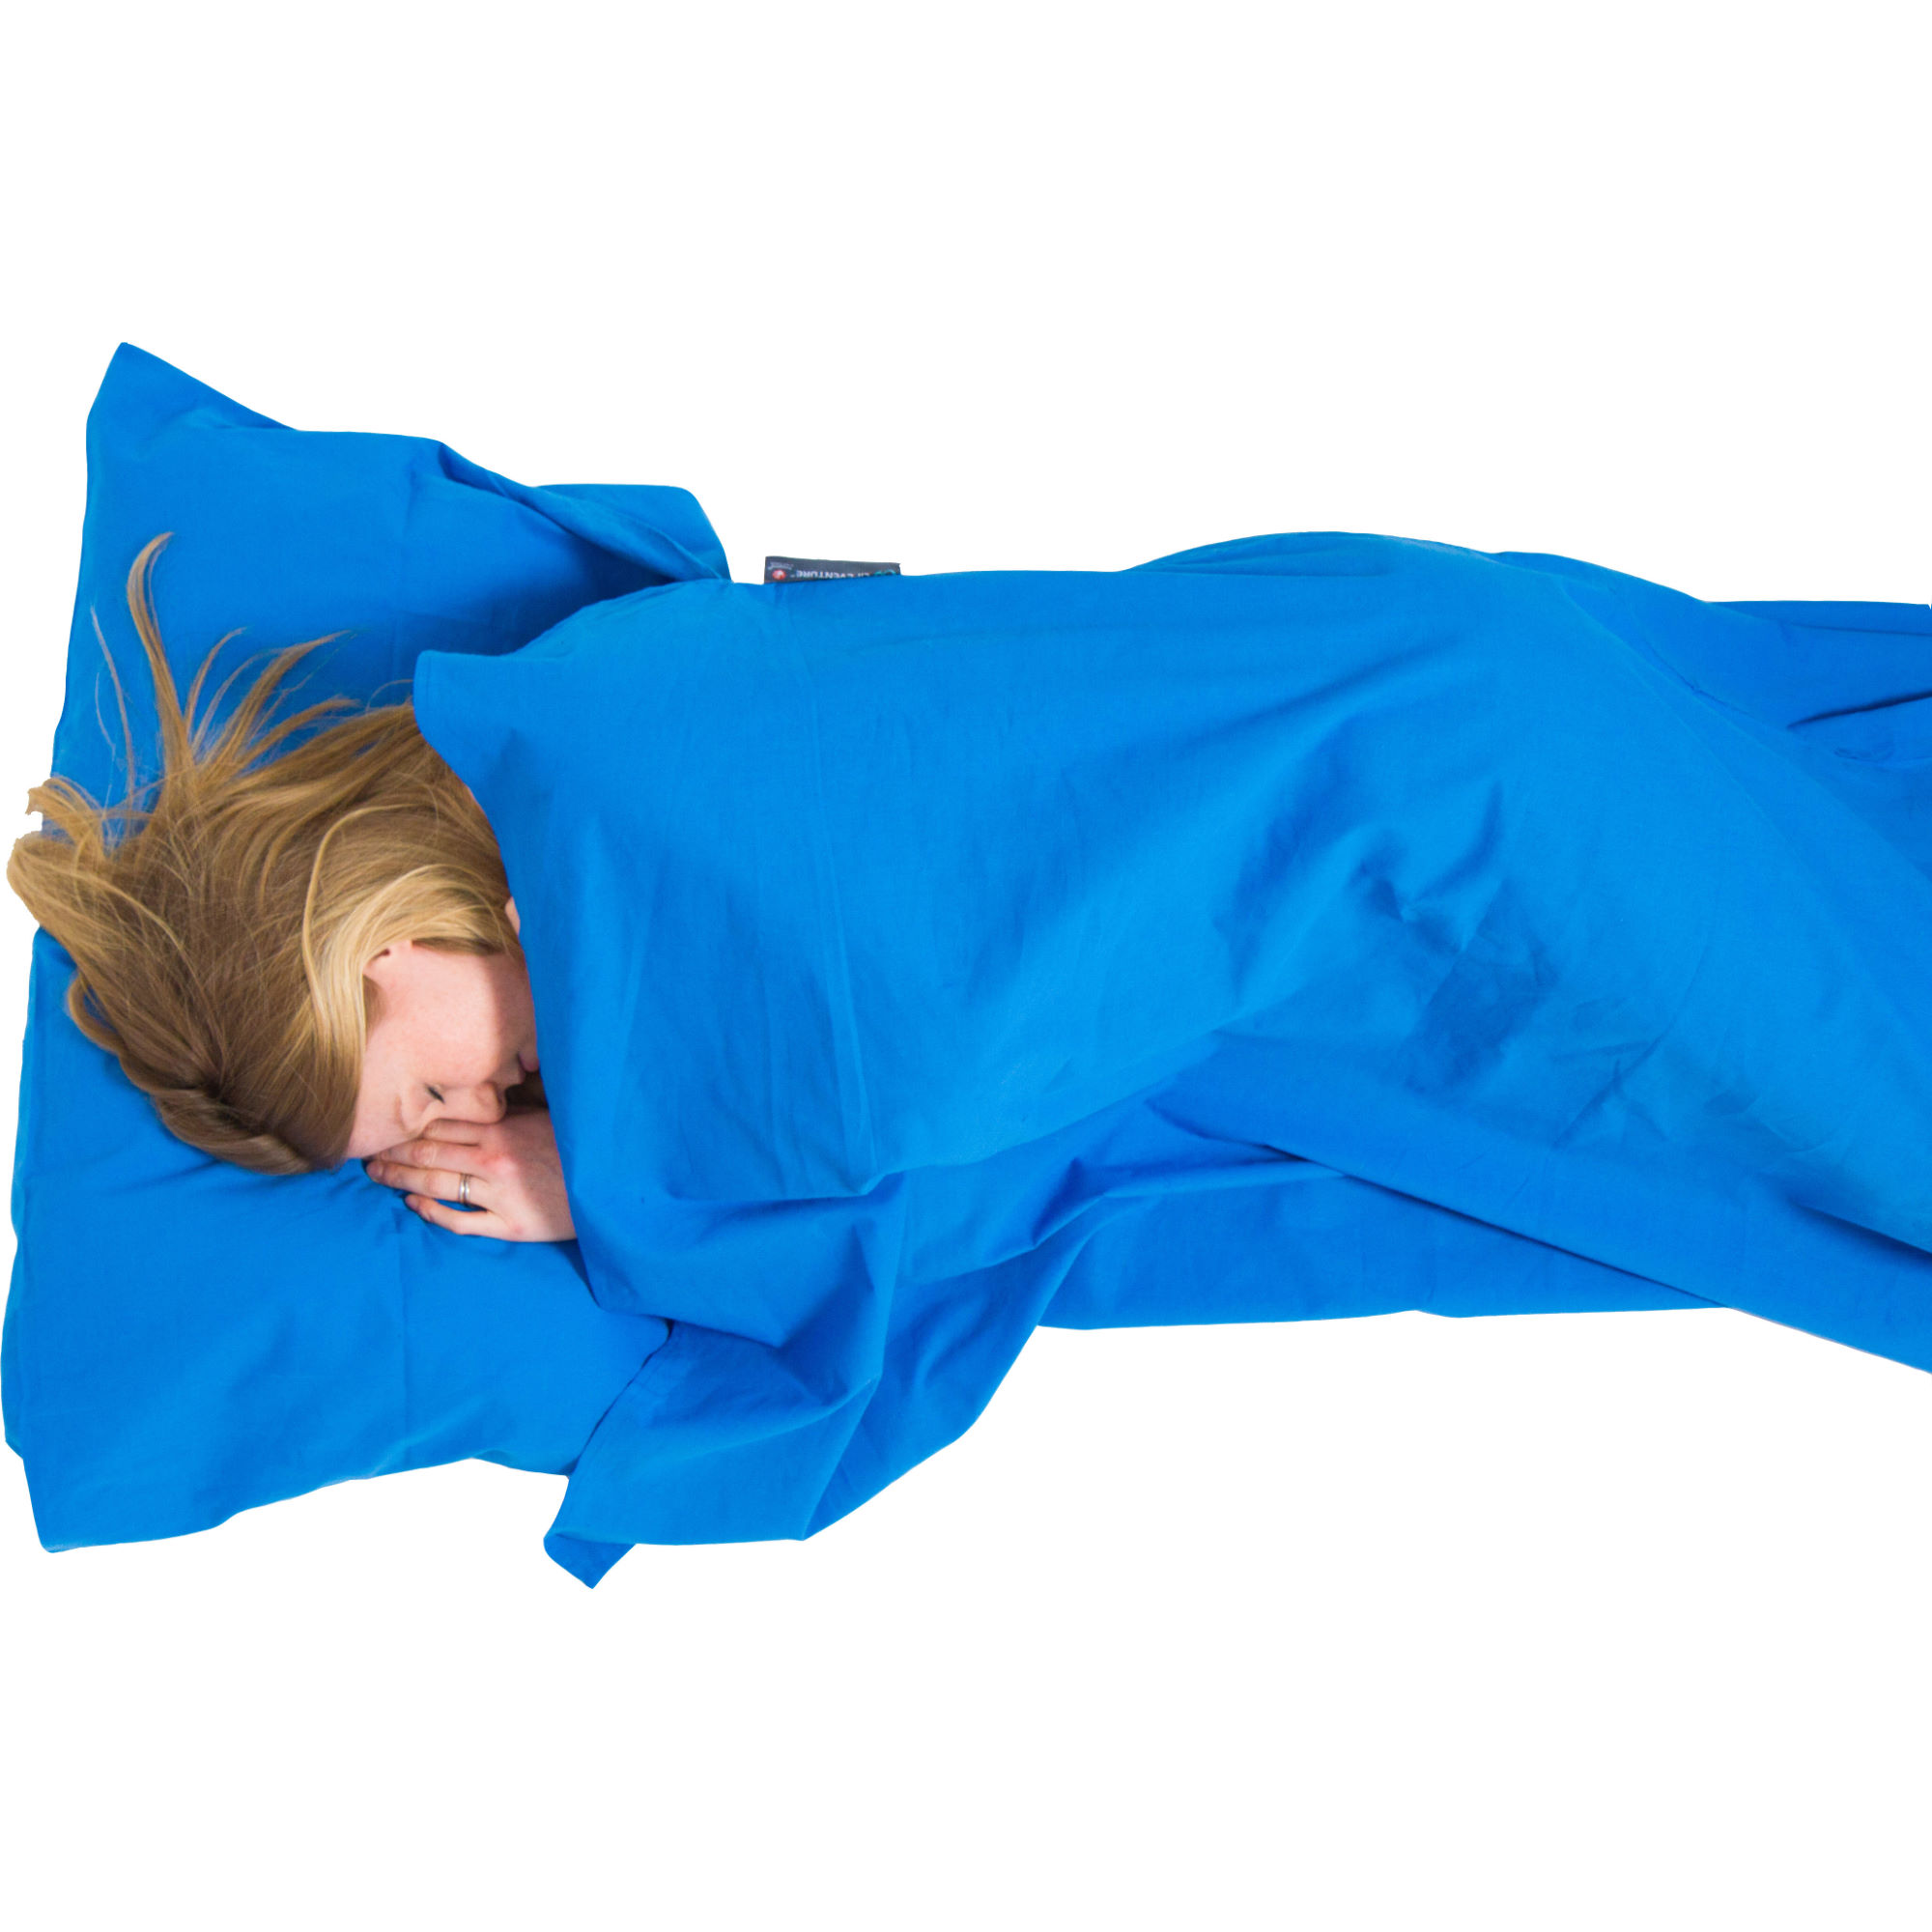 Lifeventure Cotton Sleeping Bag Liner Anti Bac Mummy Blue One